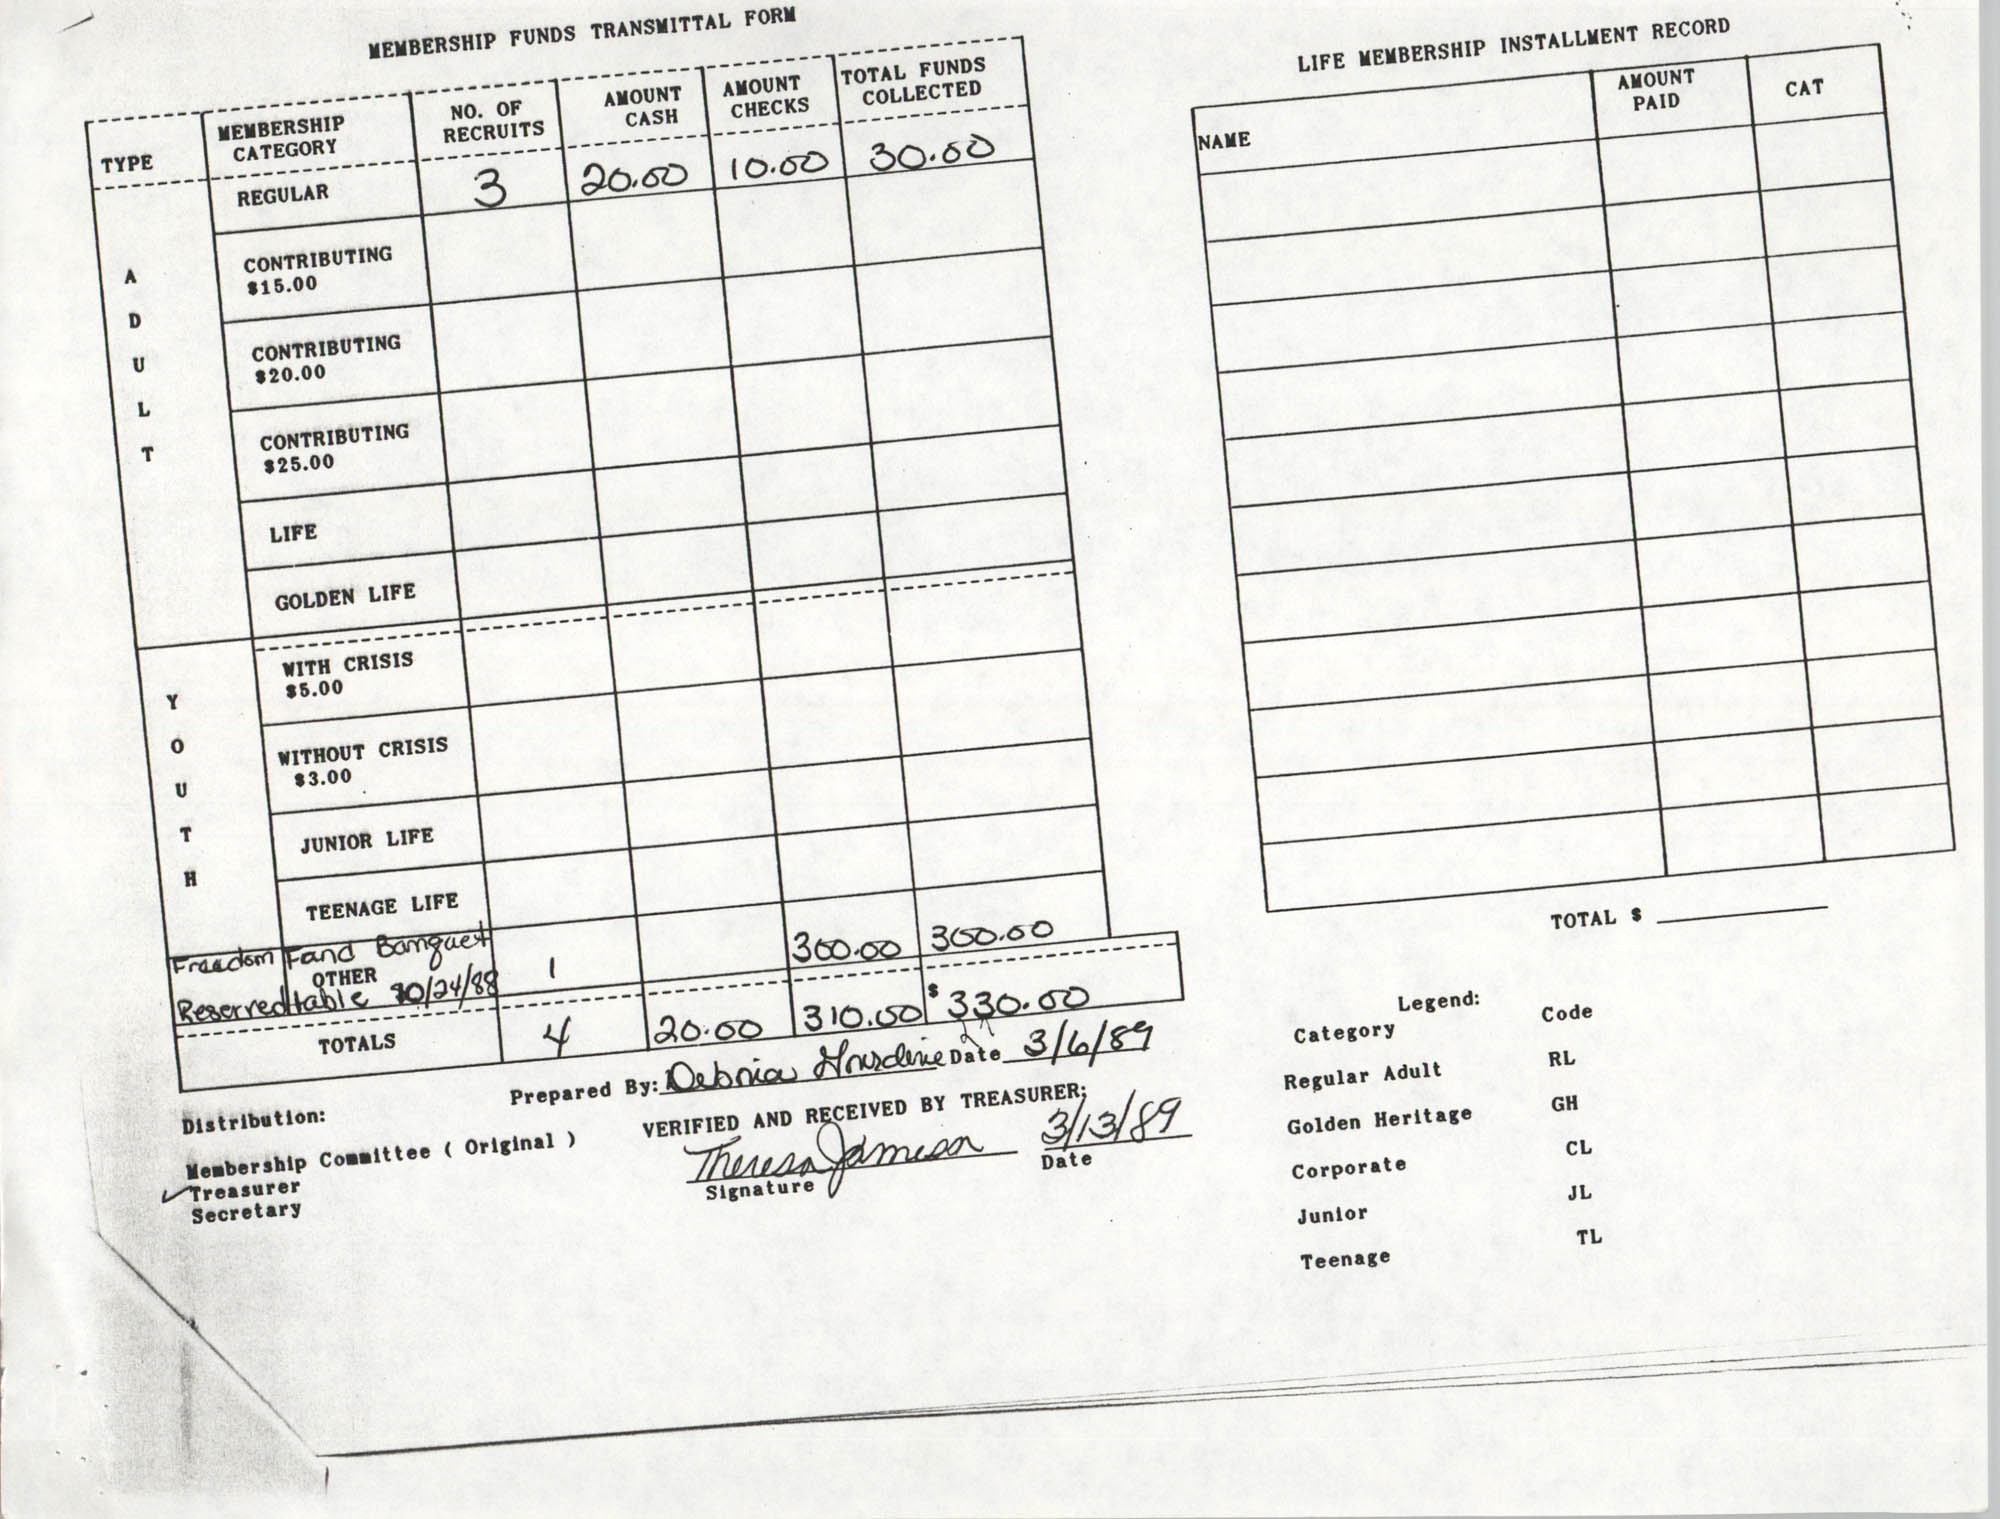 Charleston Branch of the NAACP Funds Transmittal Forms, March 1989, Page 3